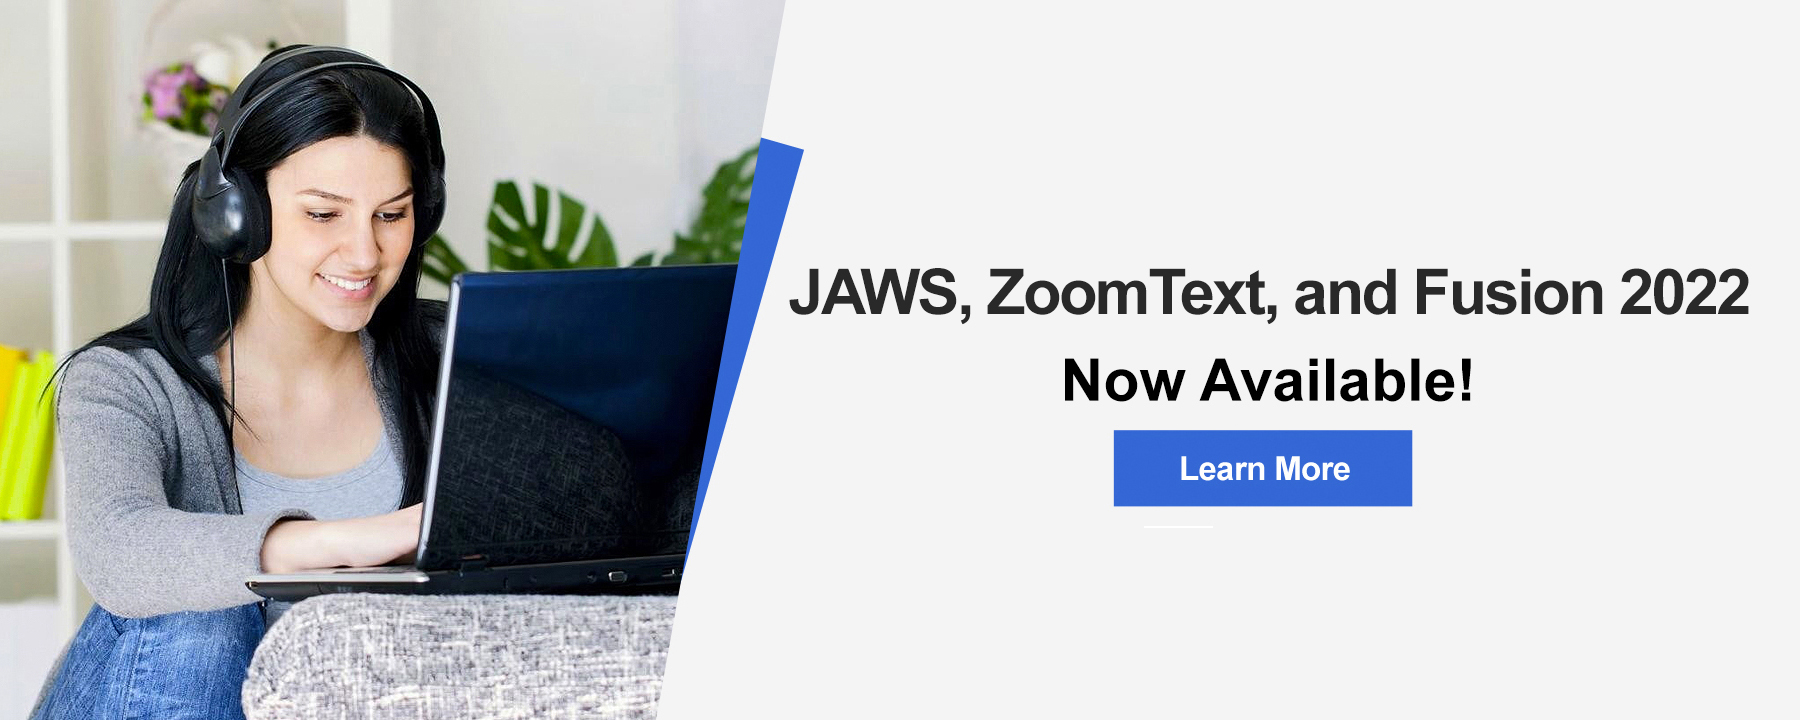 JAWS, ZoomText, and Fusion 2022 Now Available. Learn more.